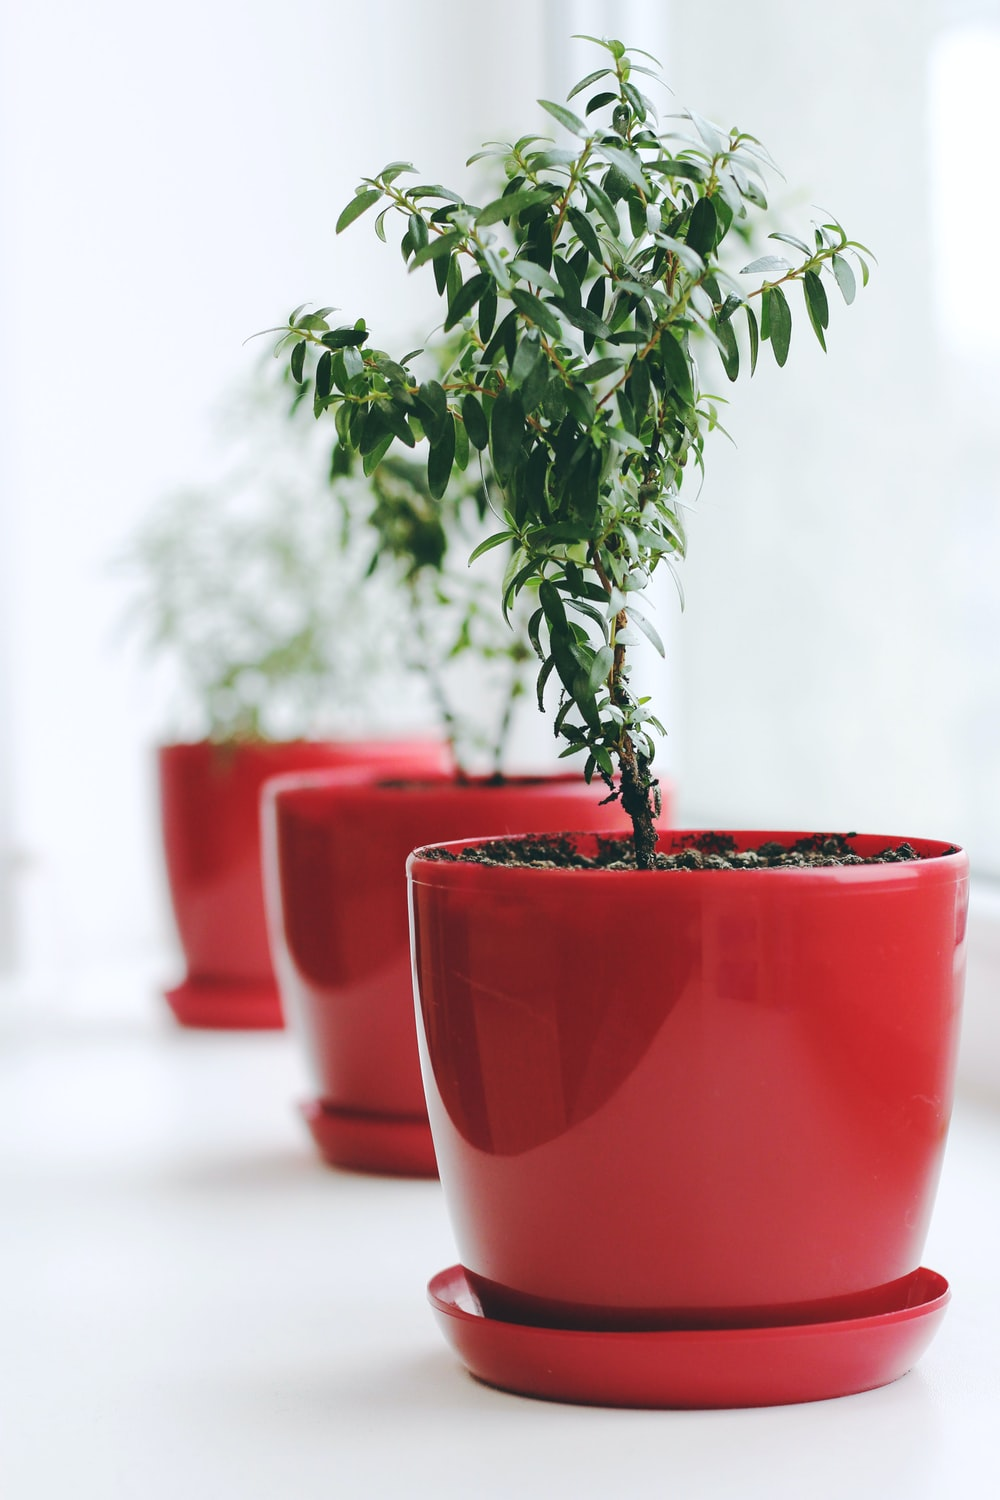 green leafed plant on red ceramic pot